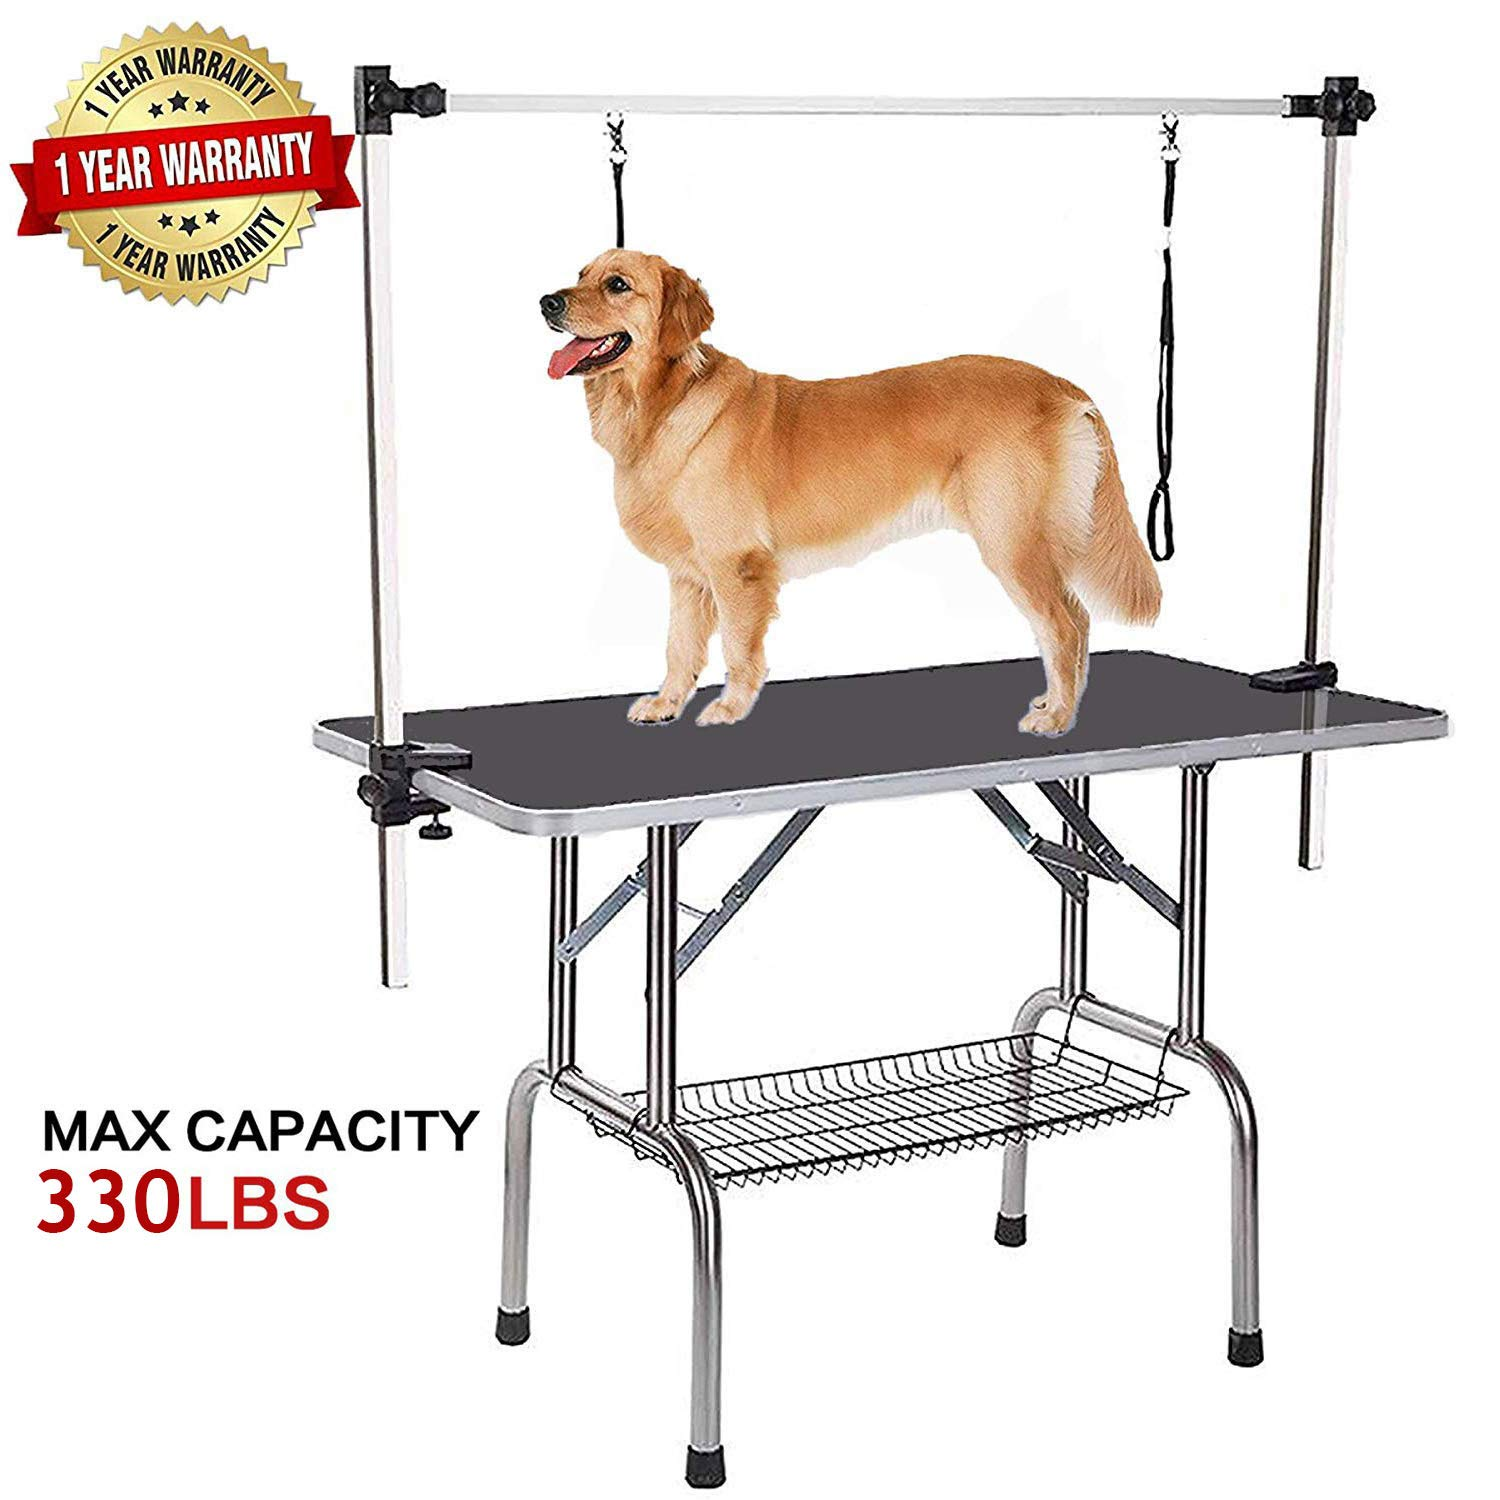 "Professional Dog Pet Grooming Table Large Adjustable Heavy Duty Portable w/Arm & Noose & Mesh Tray, Maximum Capacity Up to 330LB, 46"" x 24"""